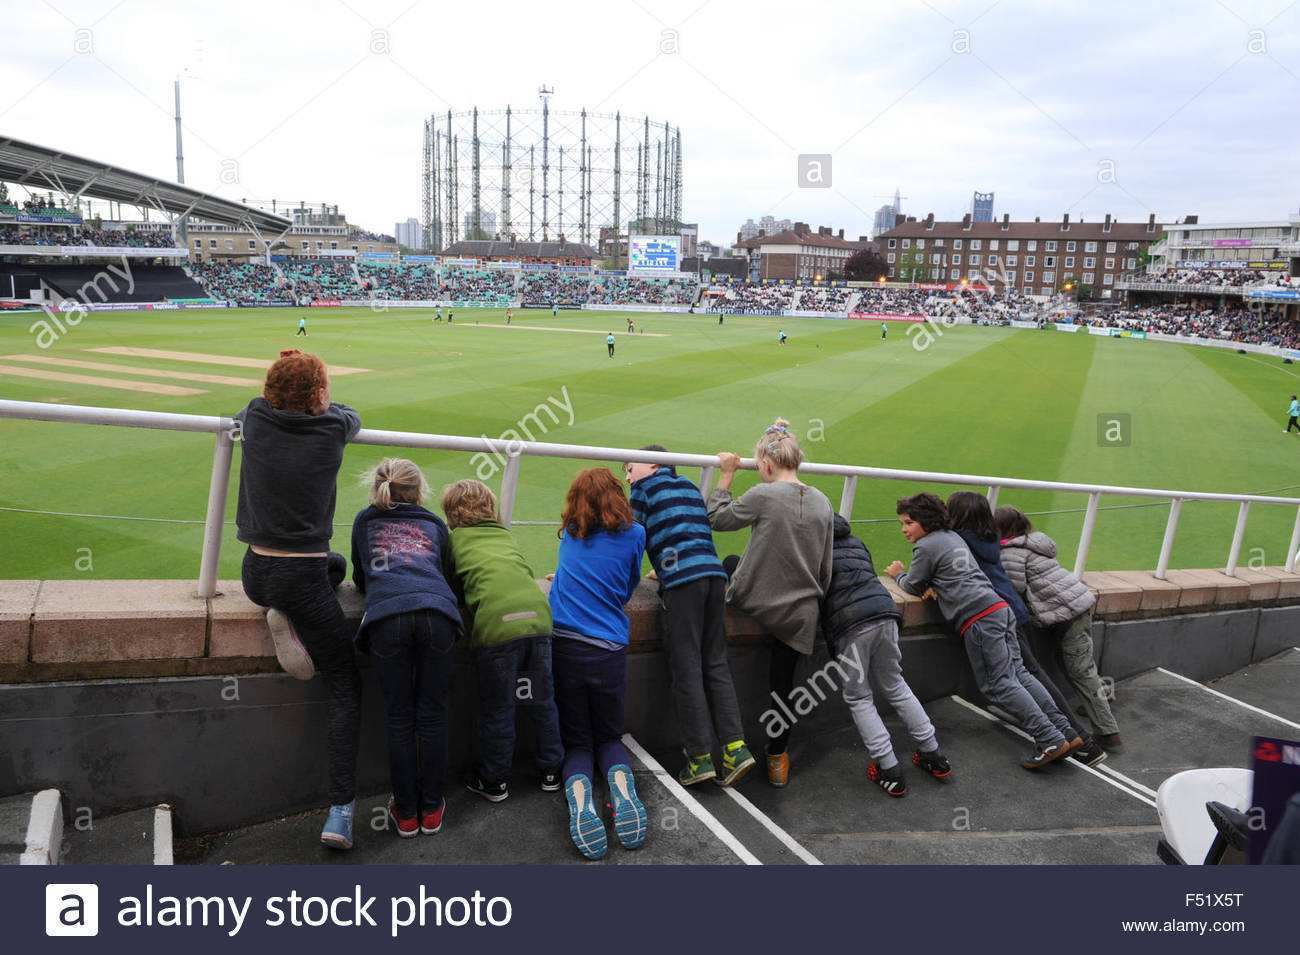 94 The Kia Oval 2020 Tickets Review with Kia Oval 2020 Tickets